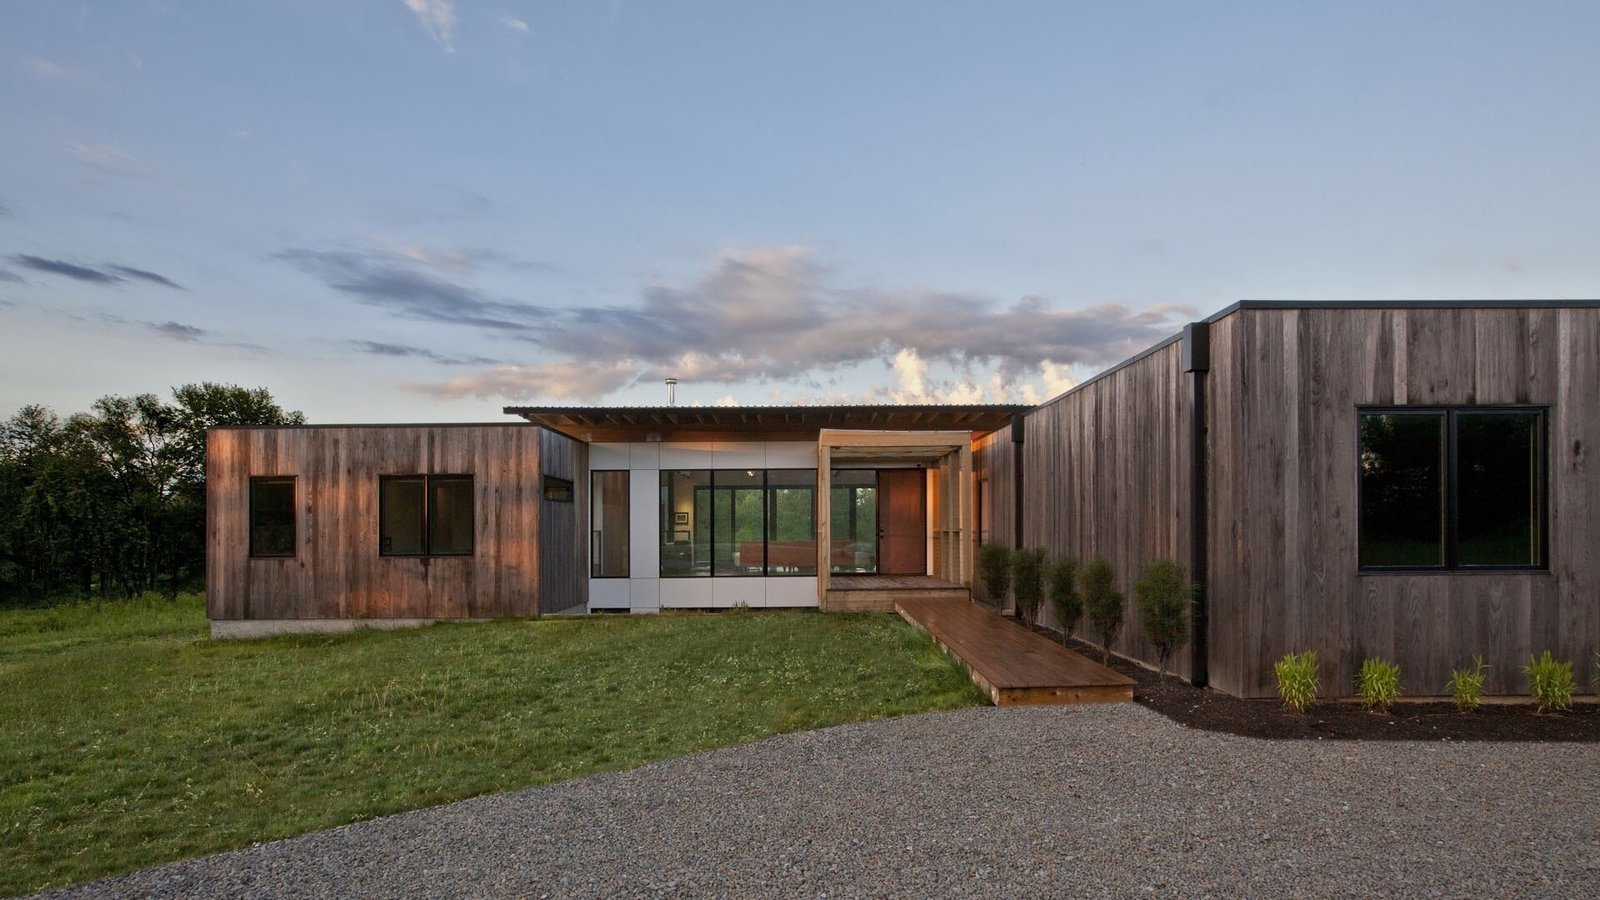 Outdoor, Grass, Field, Shrubs, Front Yard, Hardscapes, Trees, Decking Patio, Porch, Deck, and Large Patio, Porch, Deck Sunrise at Copperwood. The exterior is comprised of thermally treated Ash and white, cement panels.   Copperwood by Kevin Swan